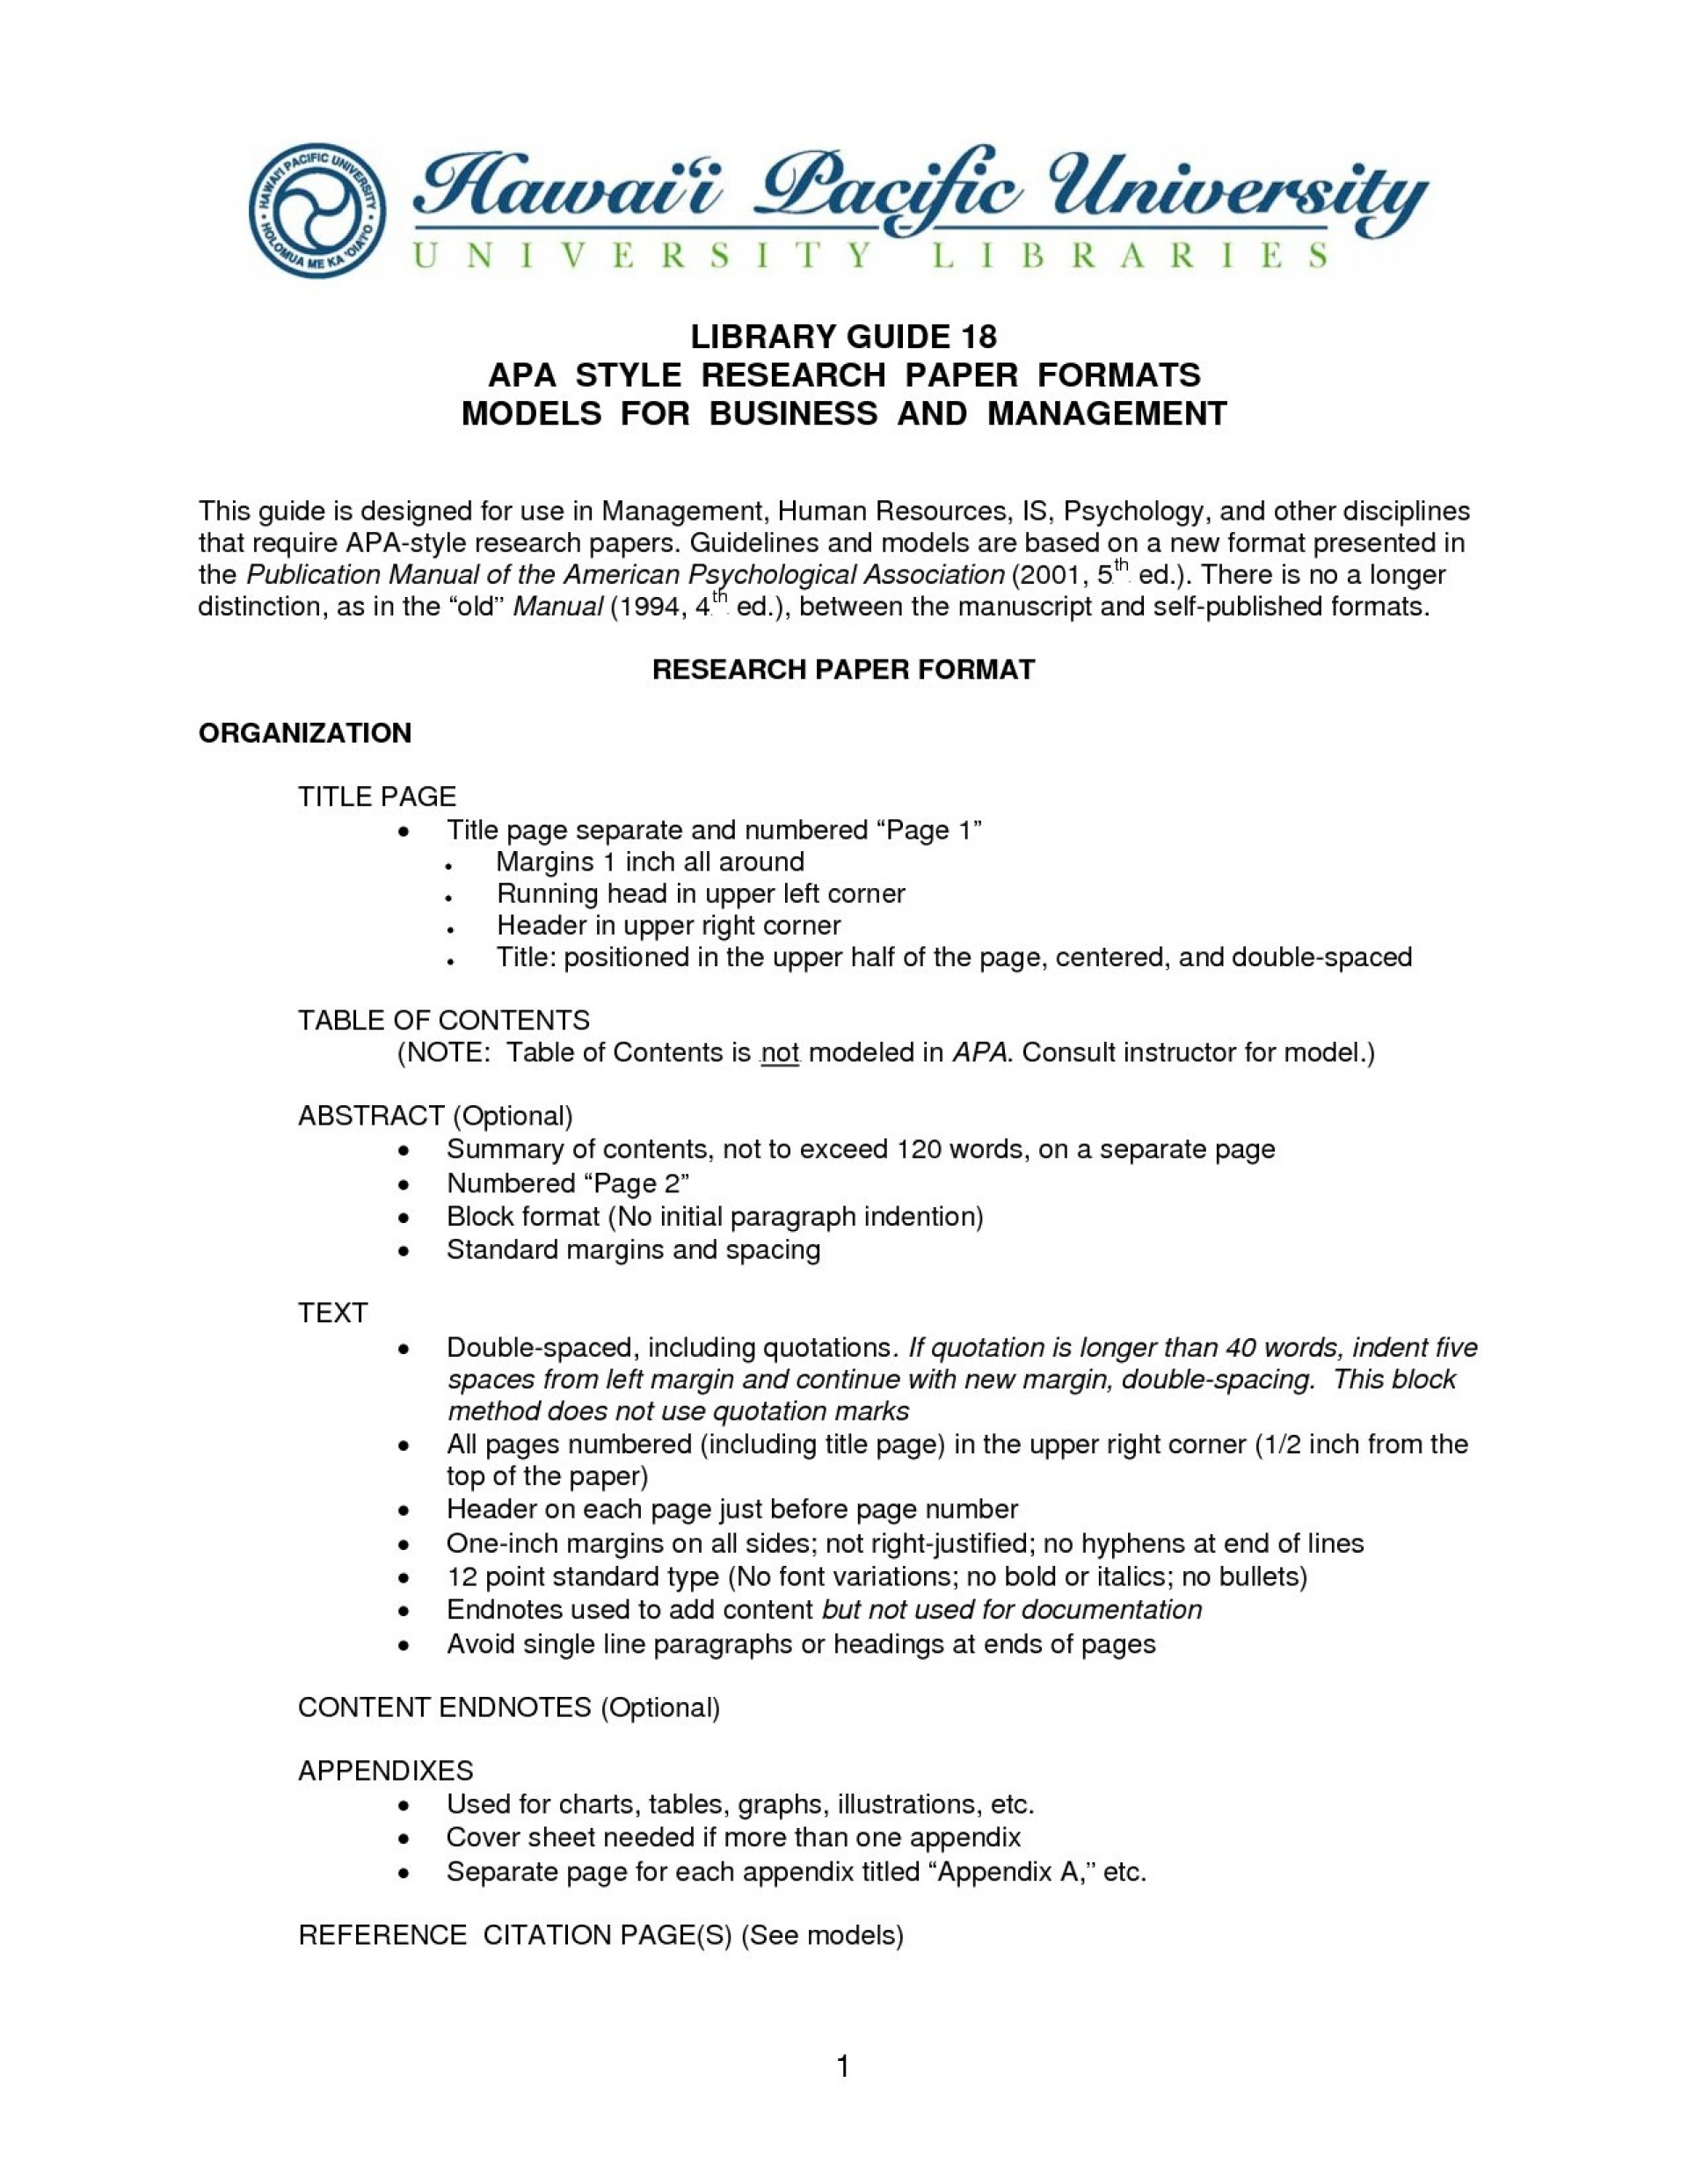 003 Format Research Paper Sample Statement Example Template Unique Apa 2017 Mla Introduction 1920